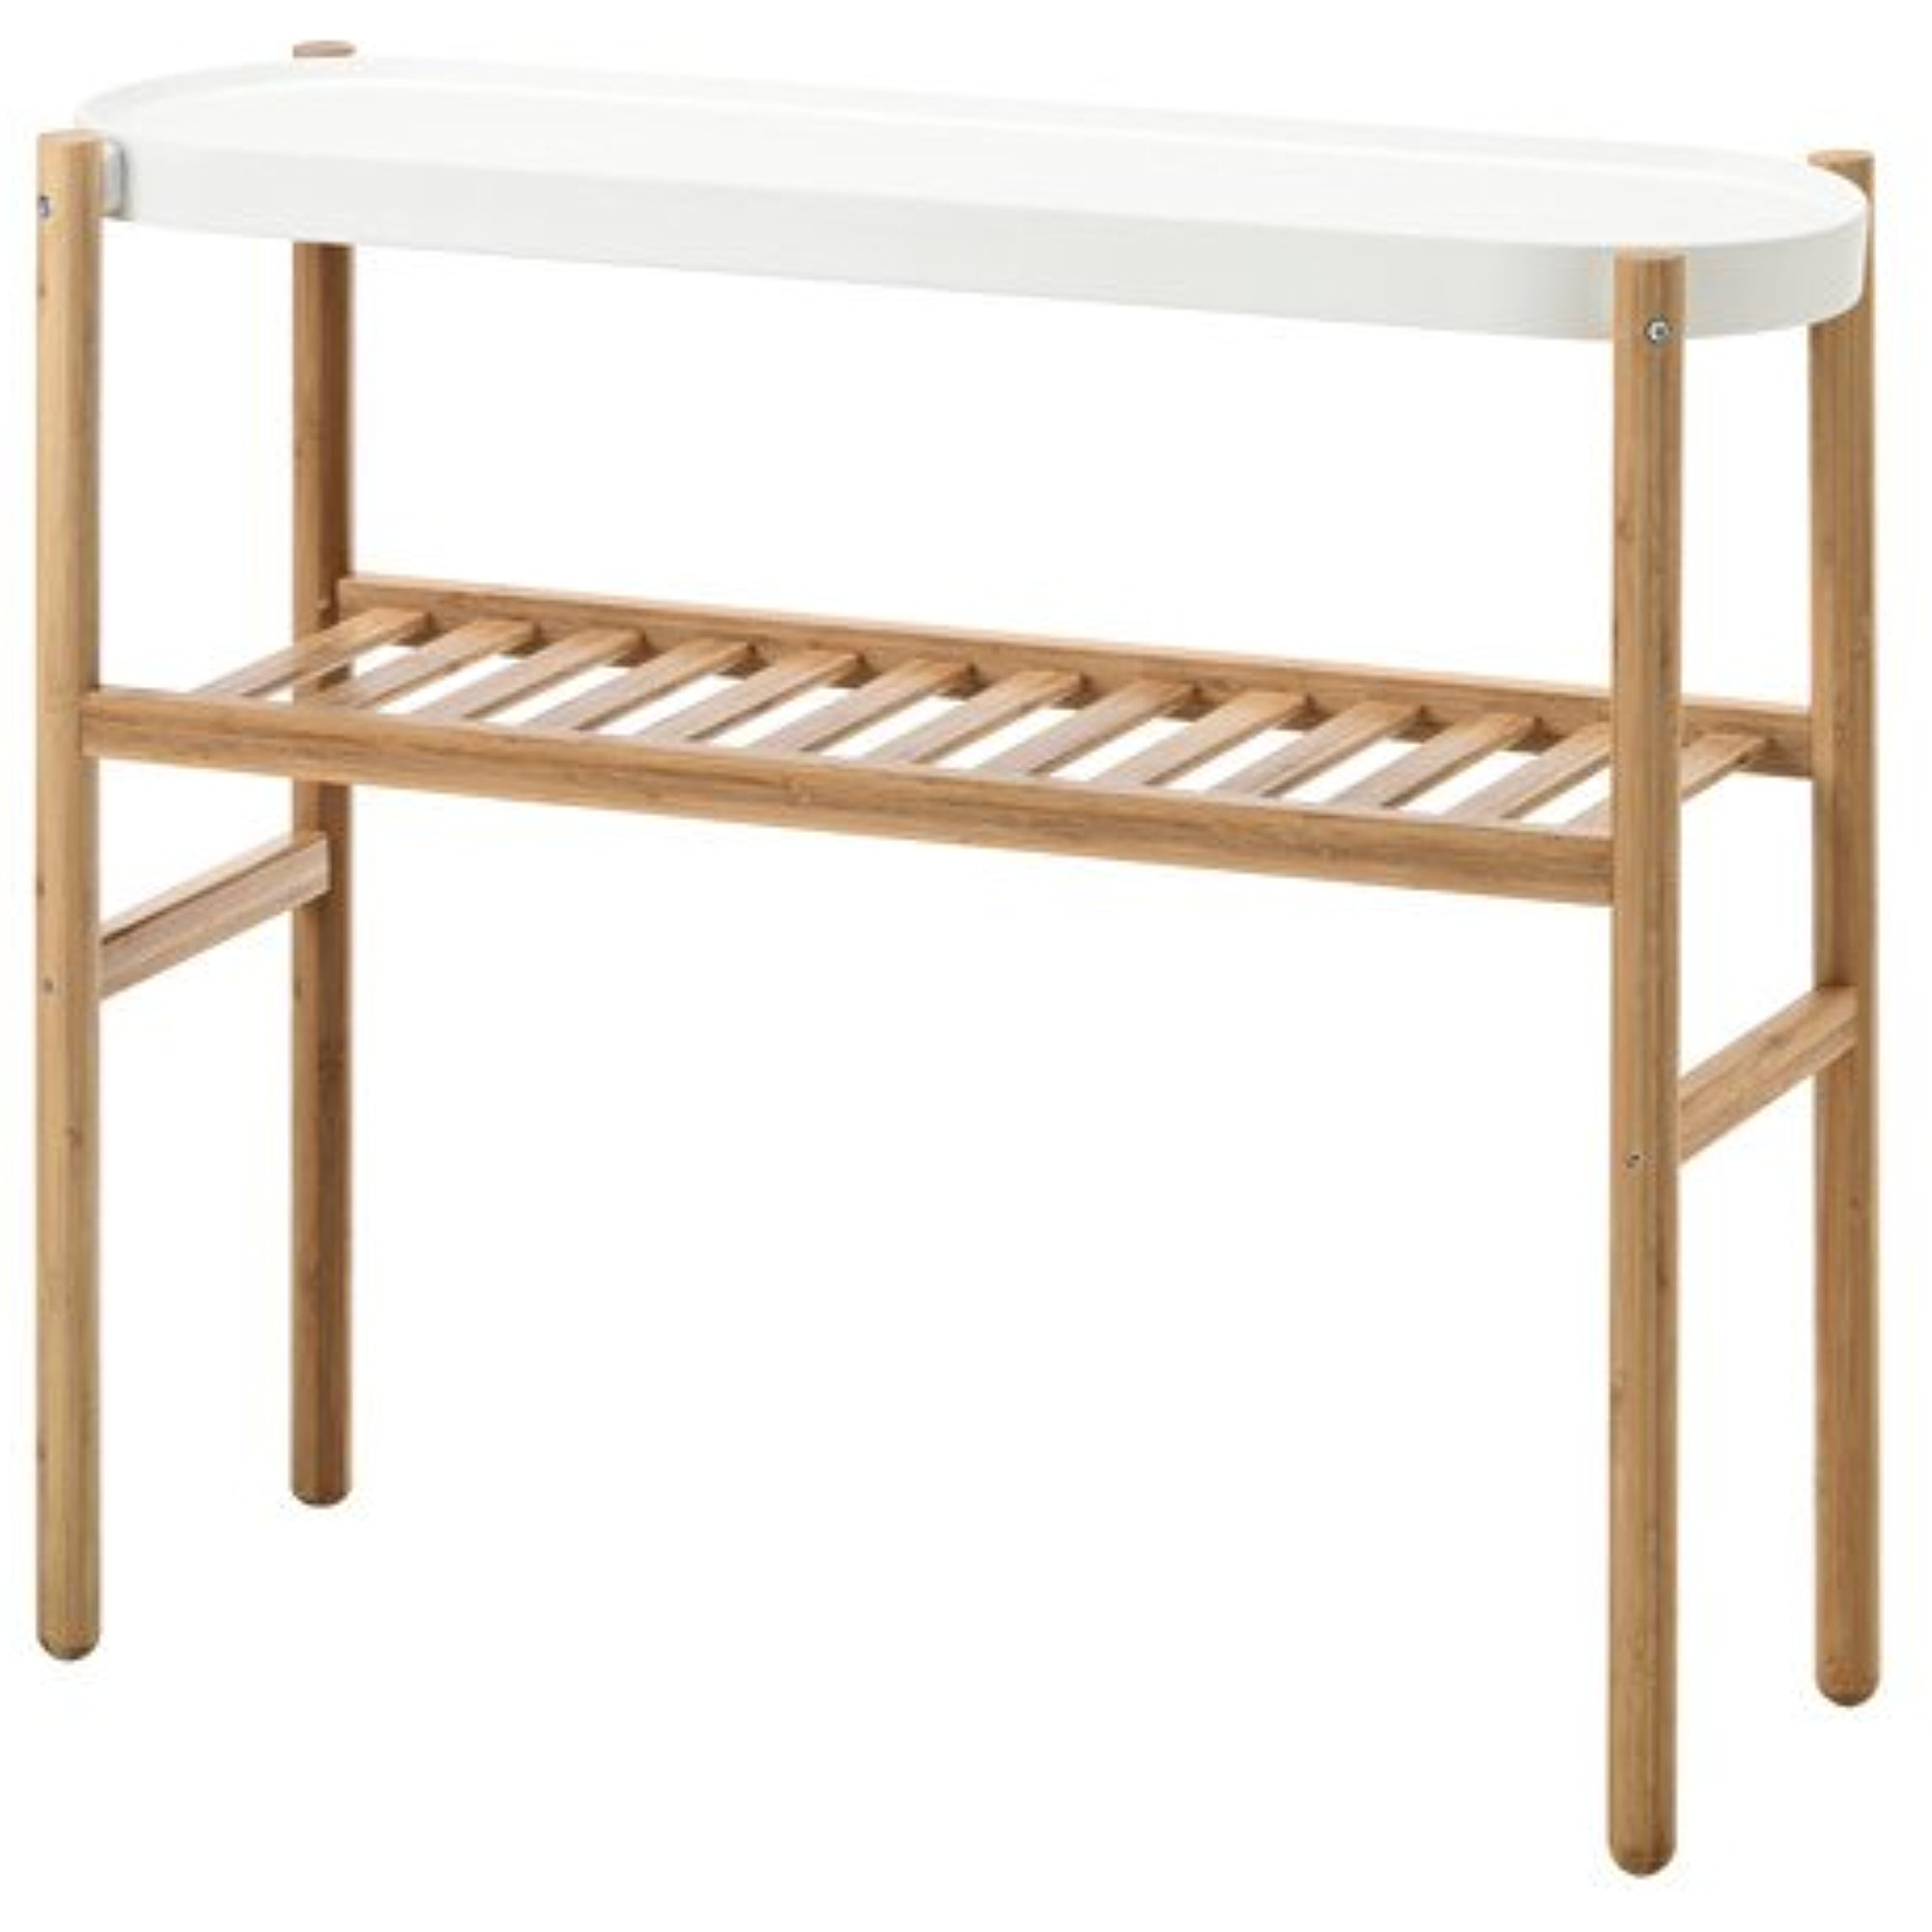 Ikea Plant Stand, Bamboo, White 38210.17265.1214